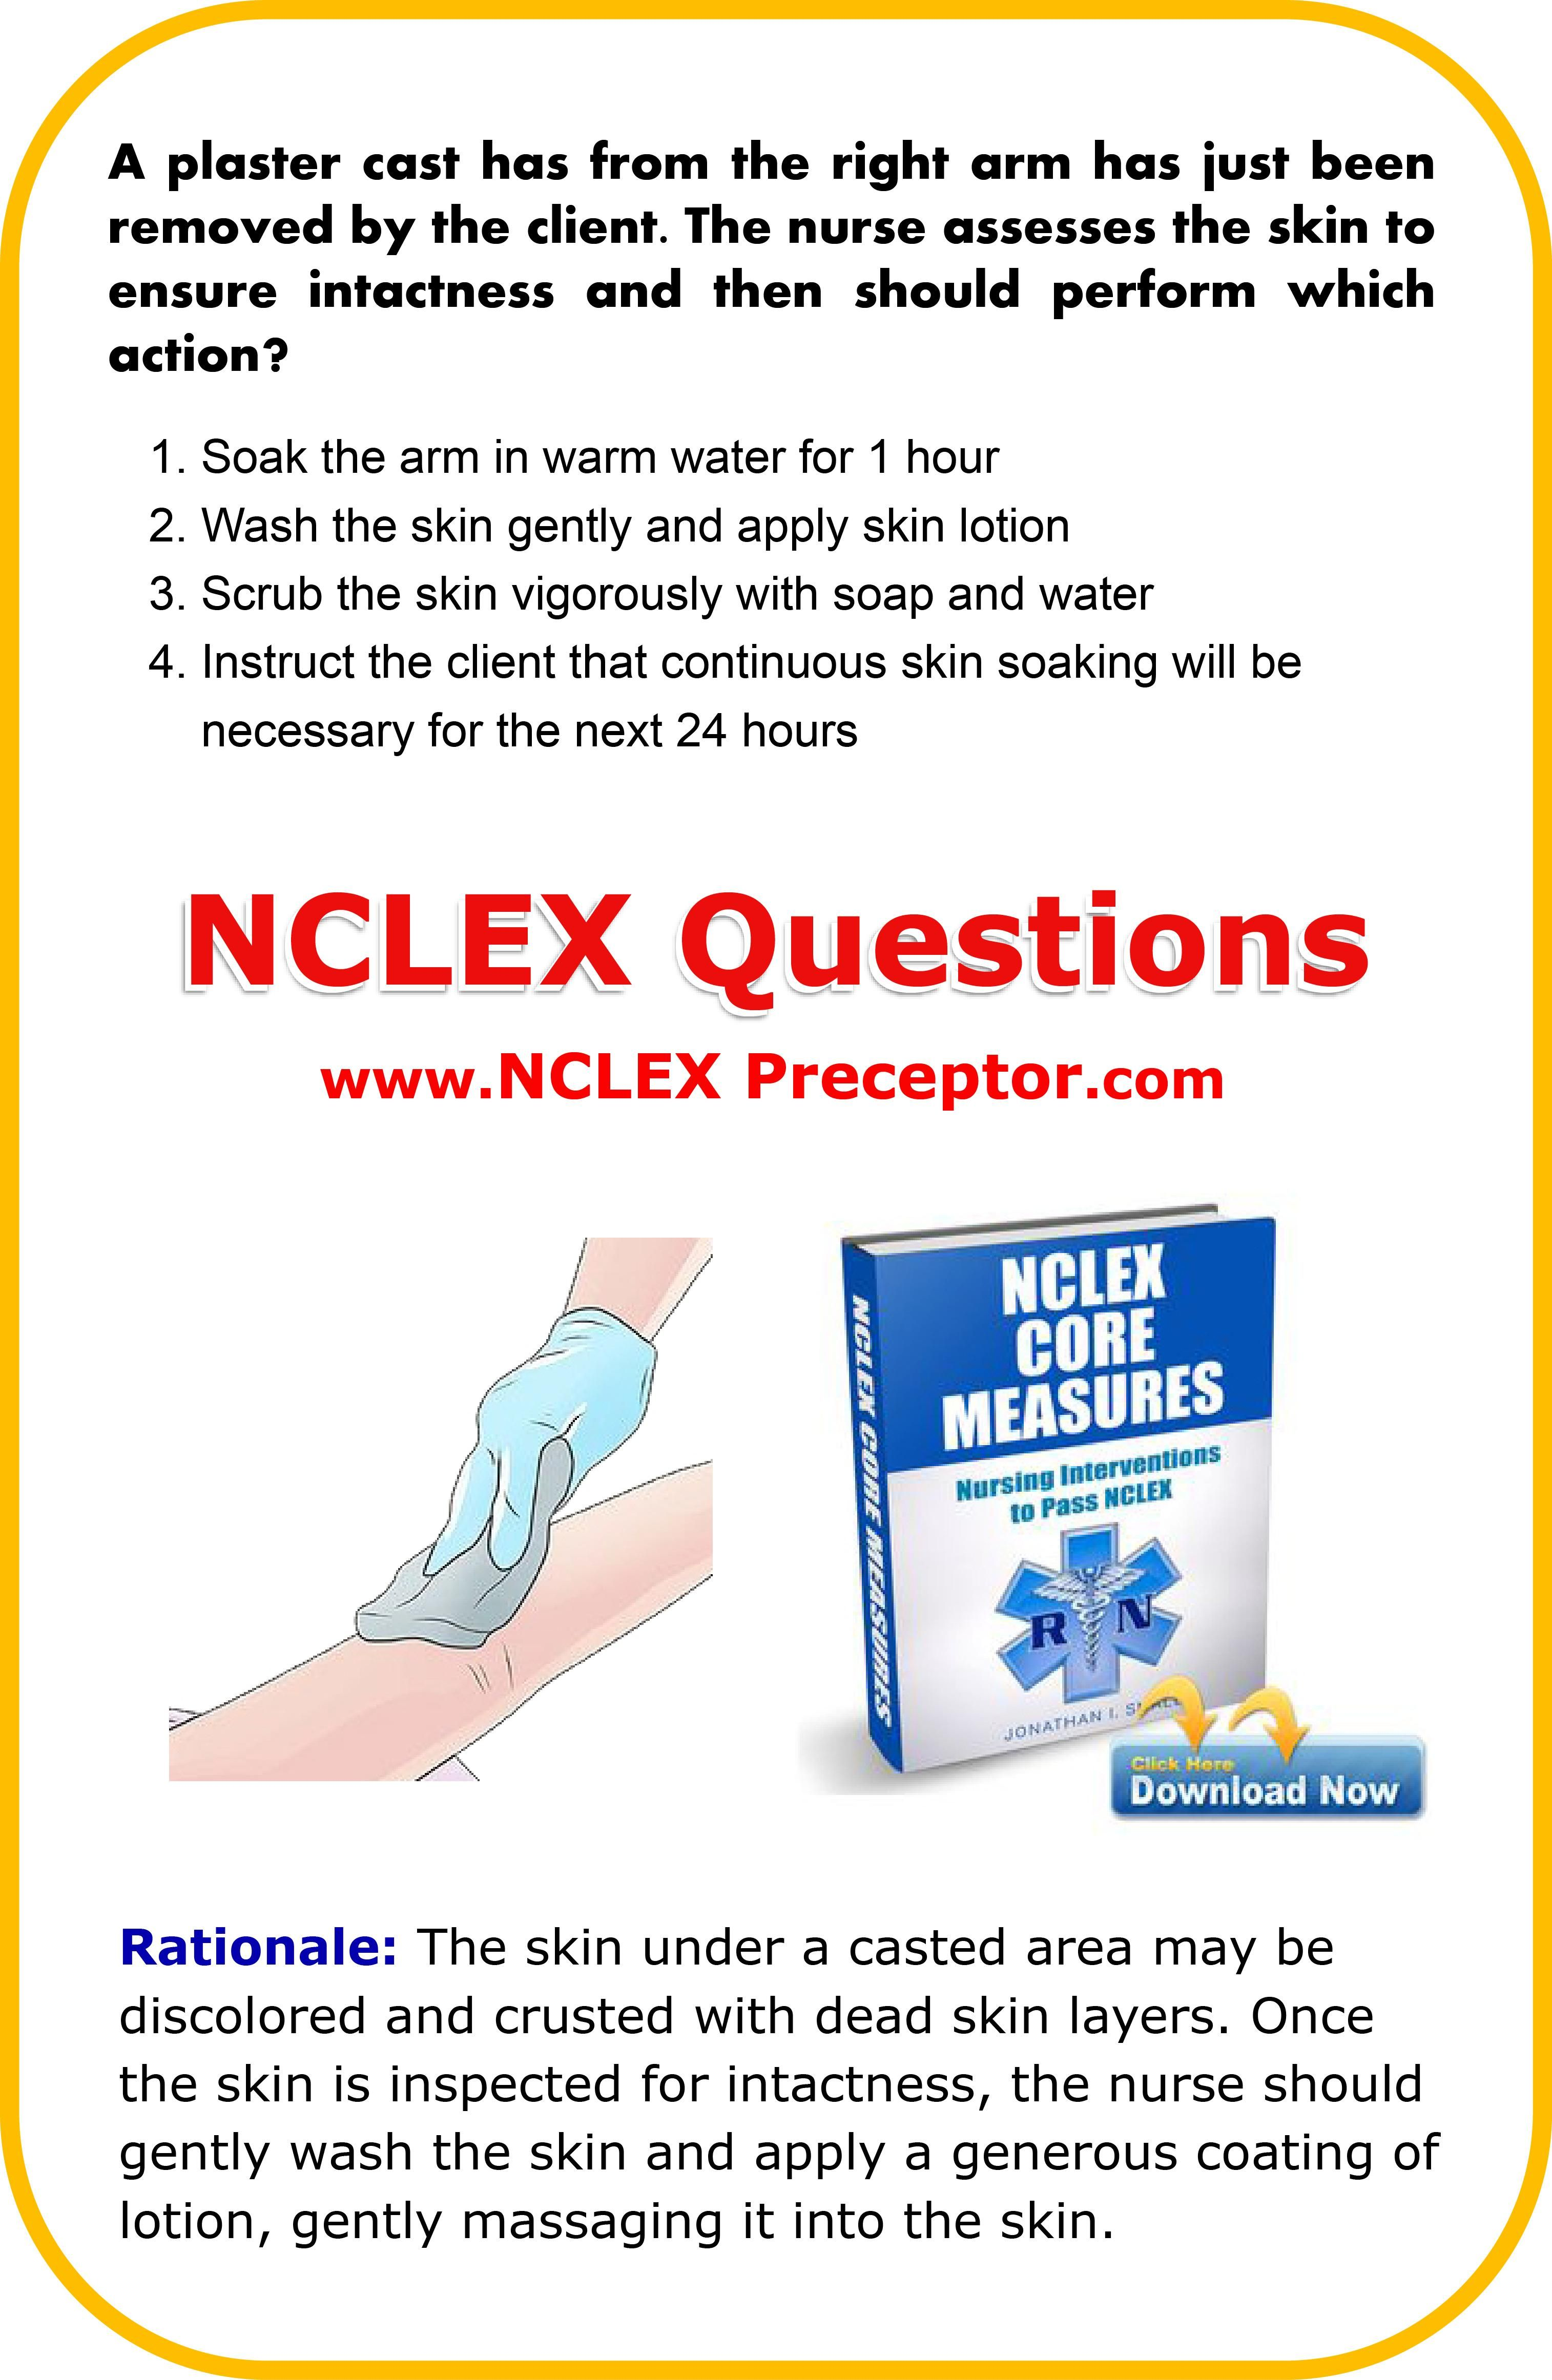 NCLEX Review - AIDS Infections and Malignancies [Video]